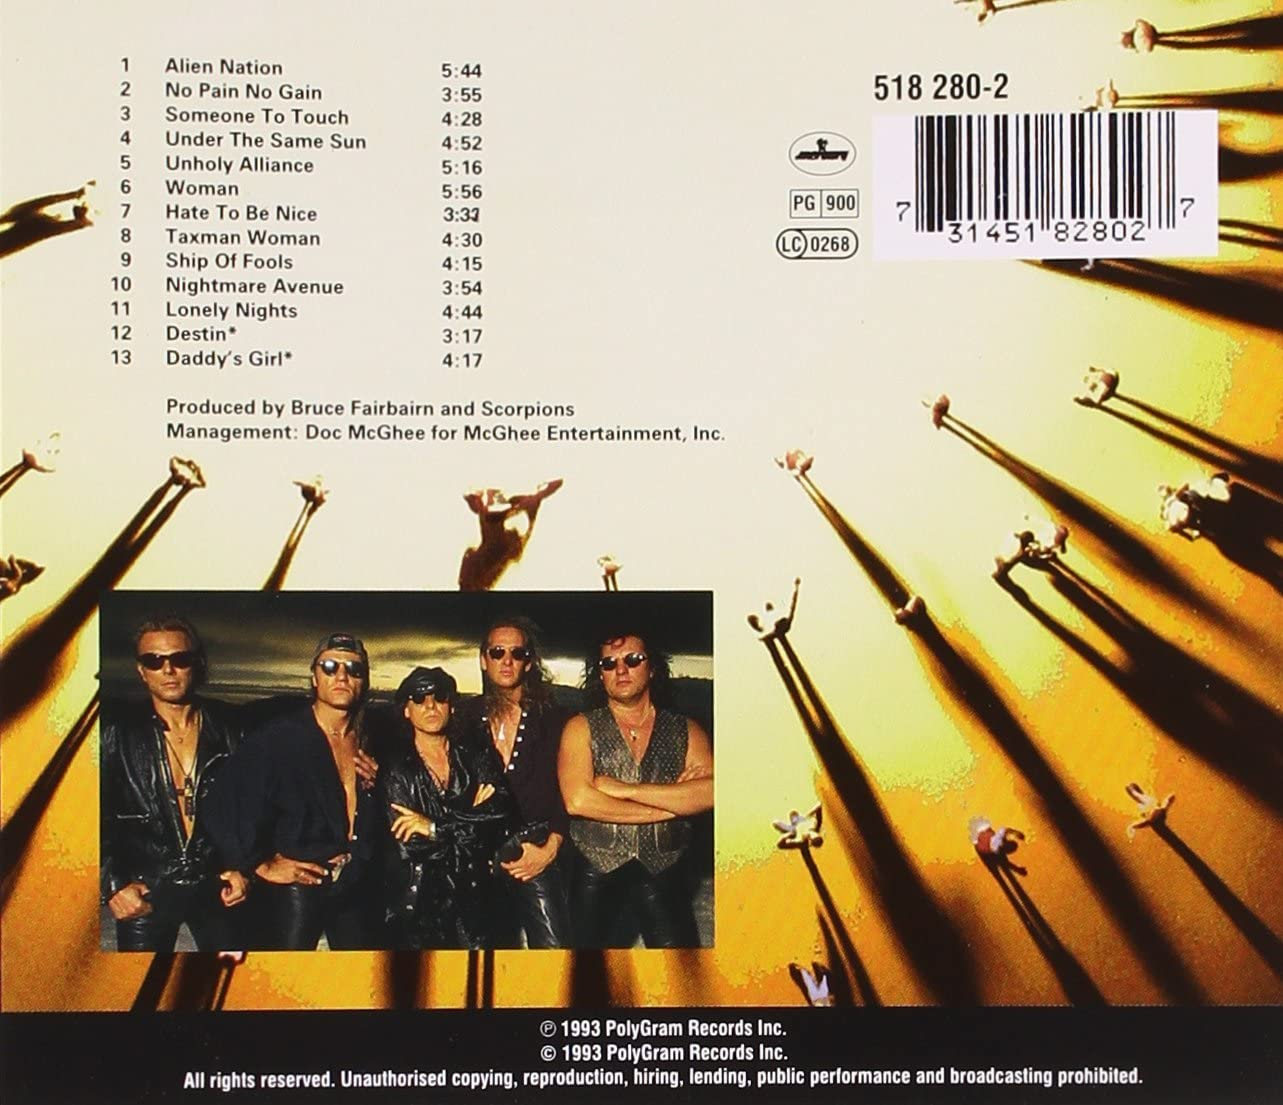 Scorpions - Face The Heat (Used) (Mint Condition)